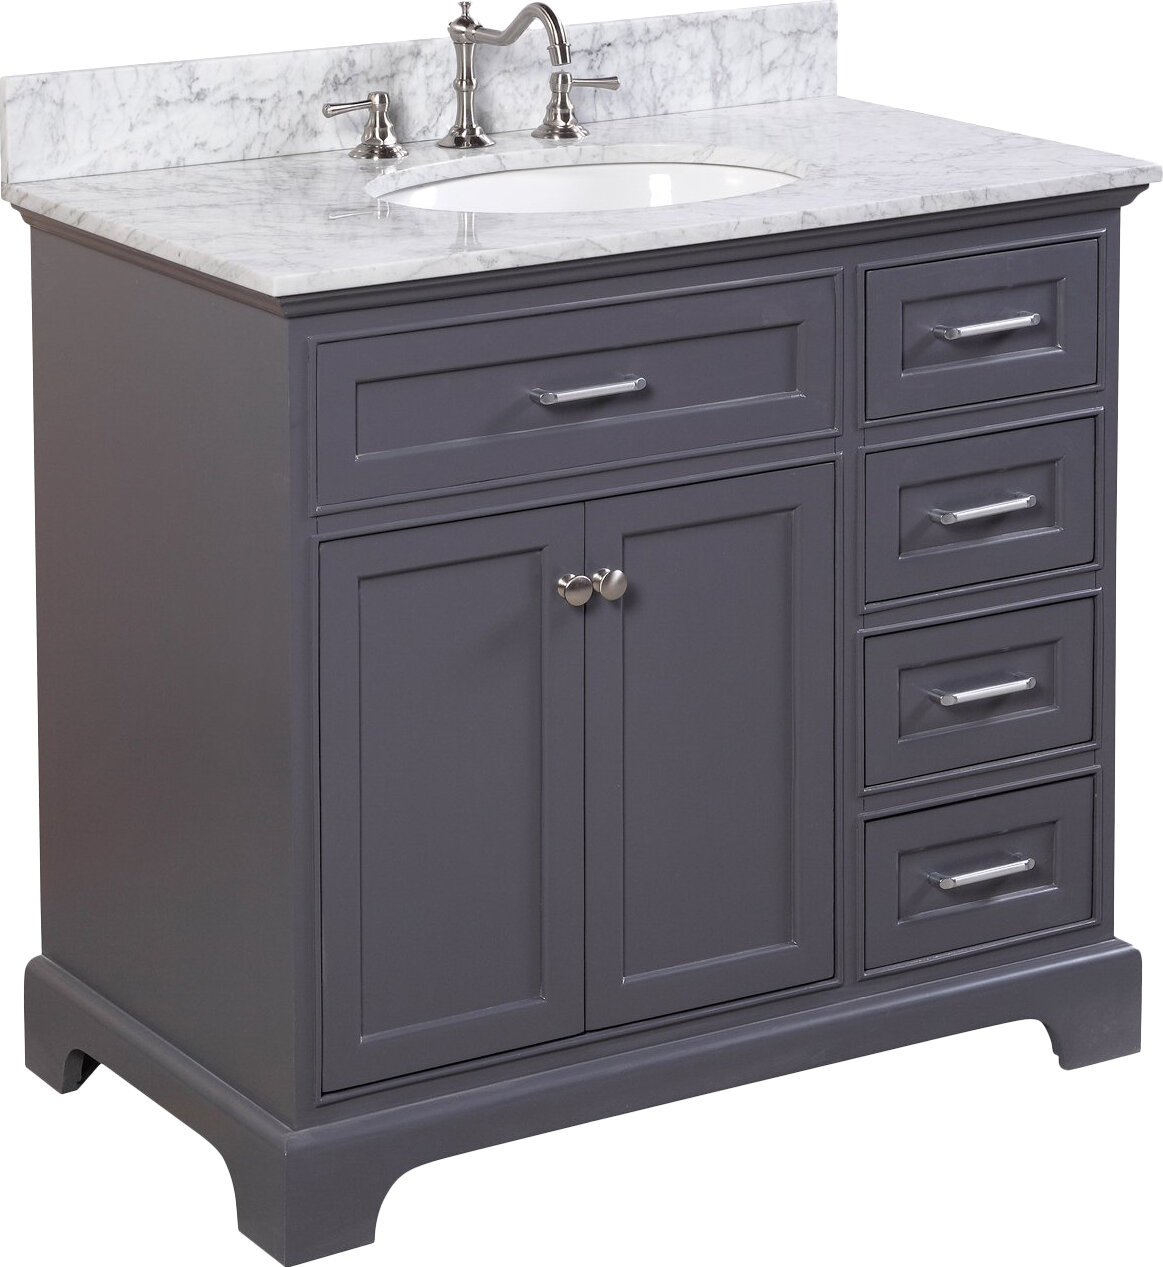 kitchen bath collection aria 36 quot single vanity set ebay kitchen bath collection katherine 60 quot single bathroom